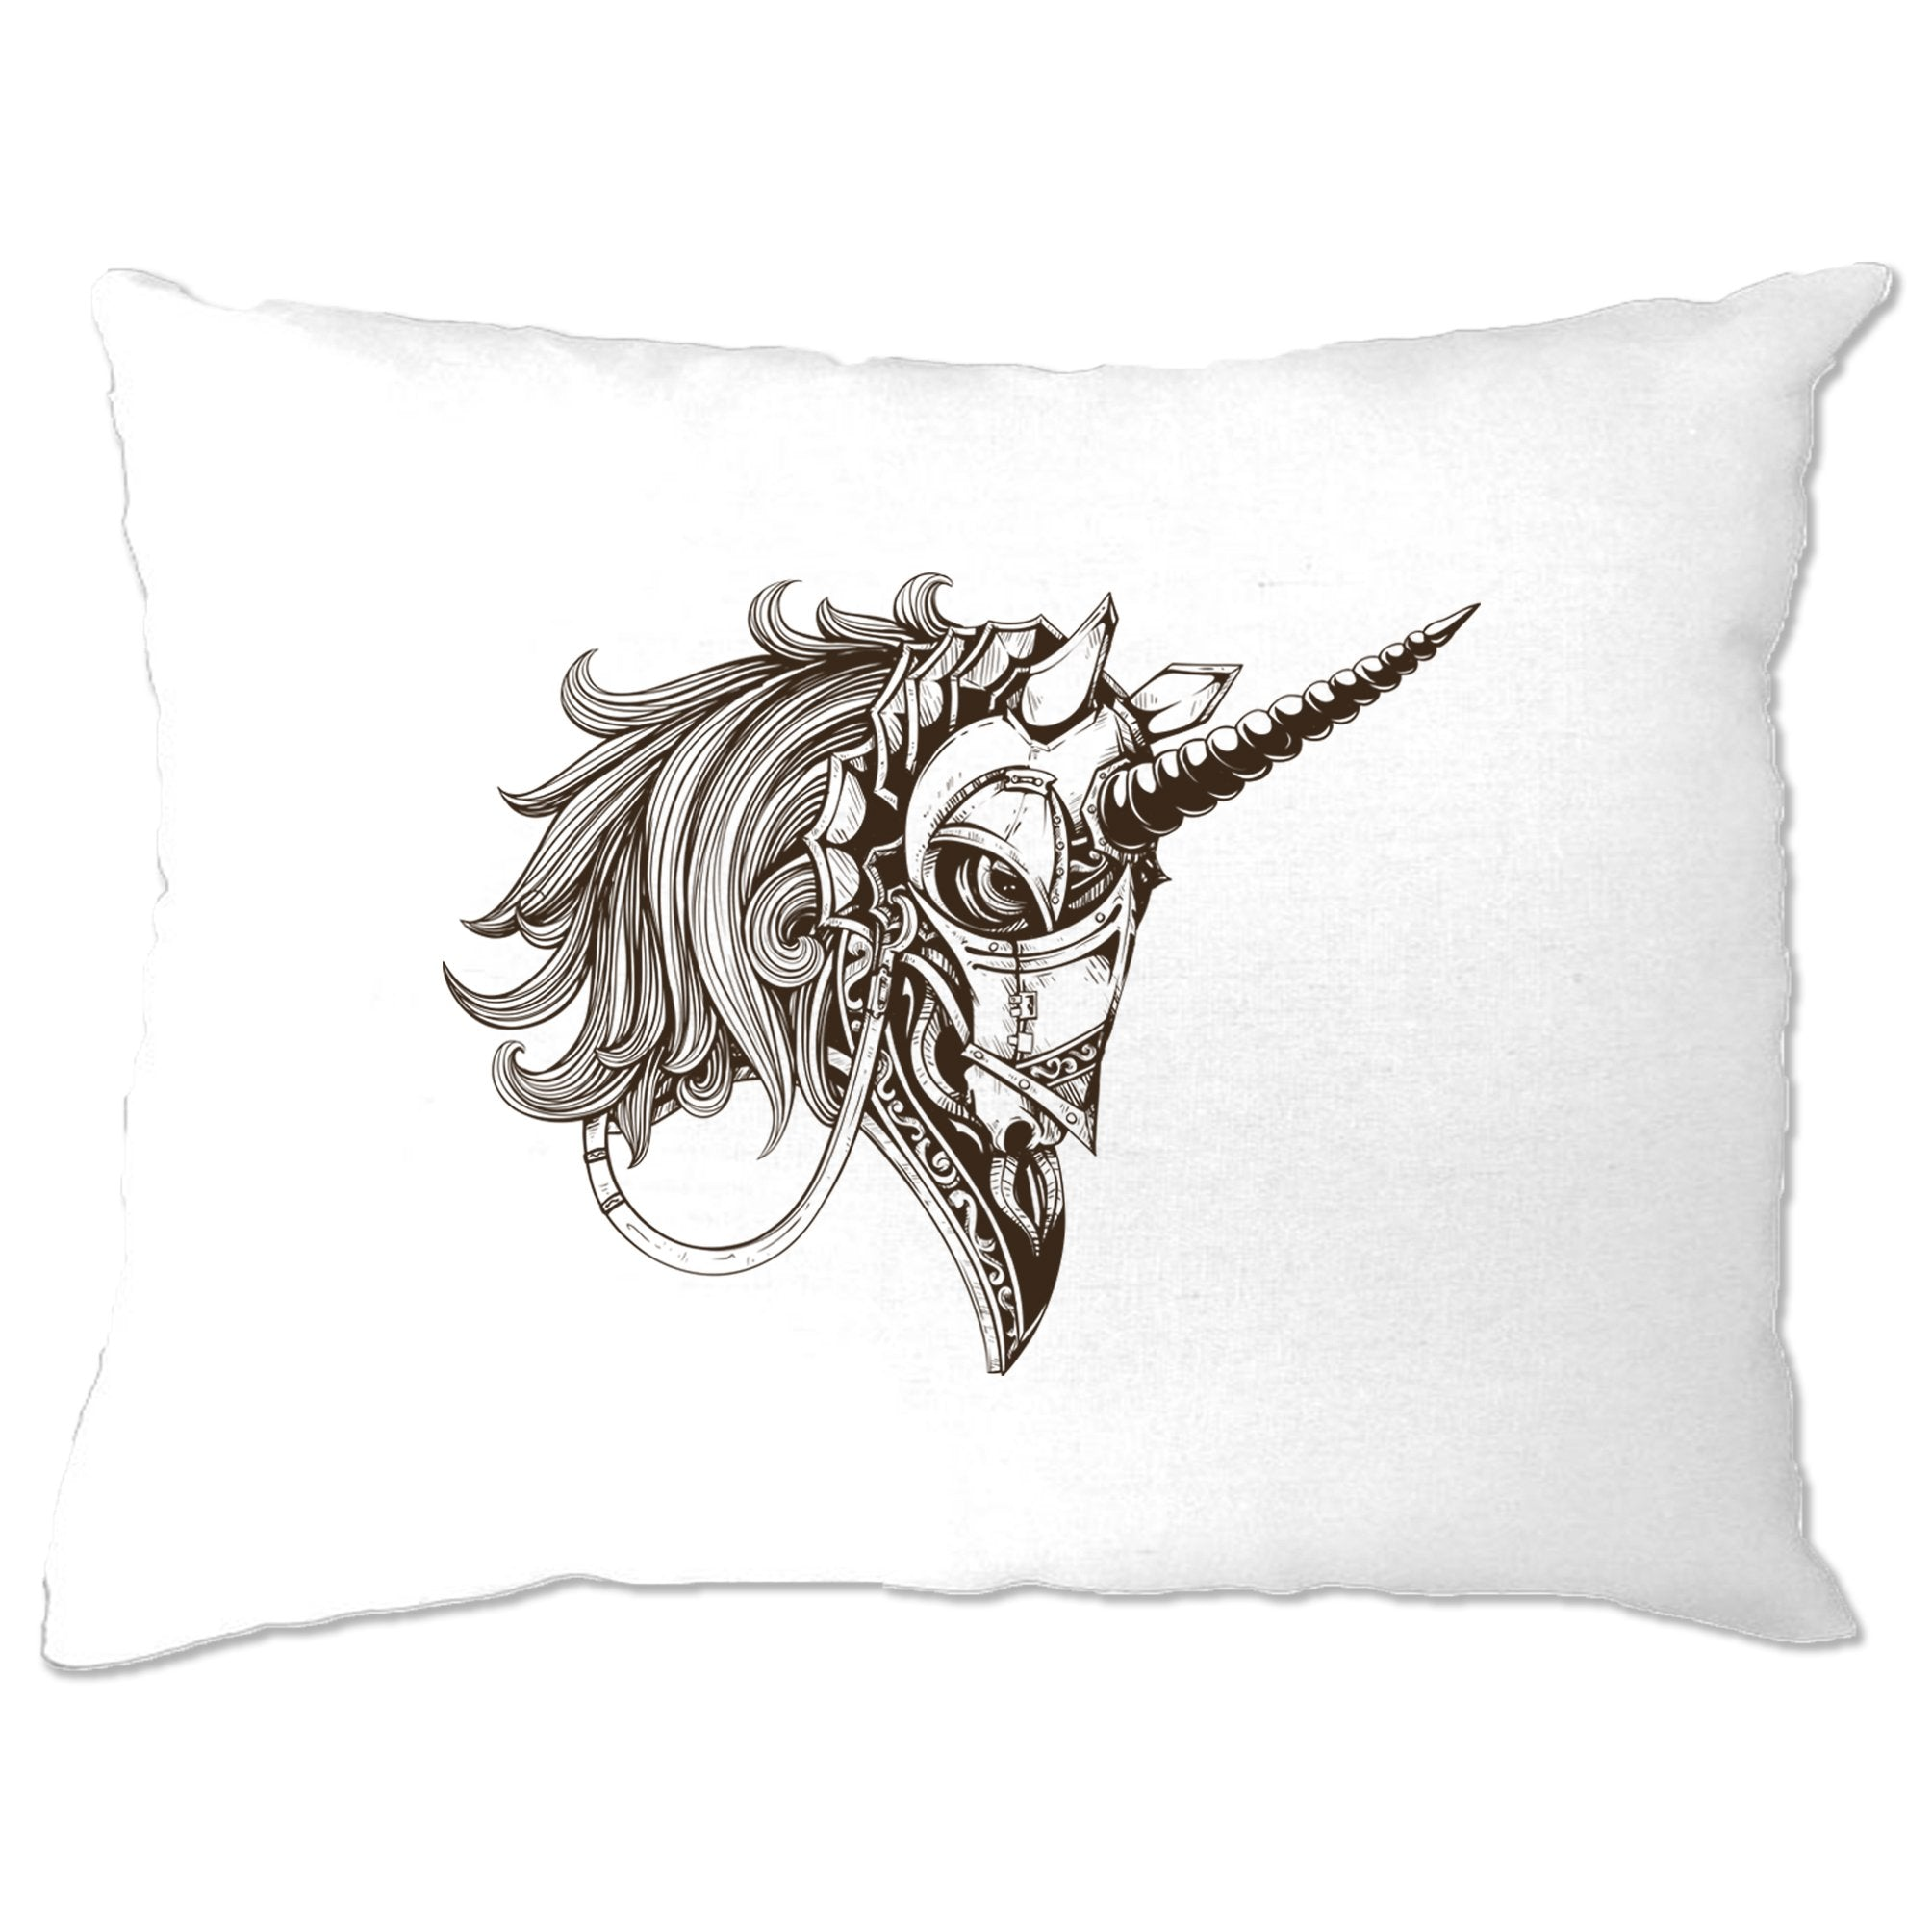 Gothic Art Pillow Case Armoured Unicorn Graphic